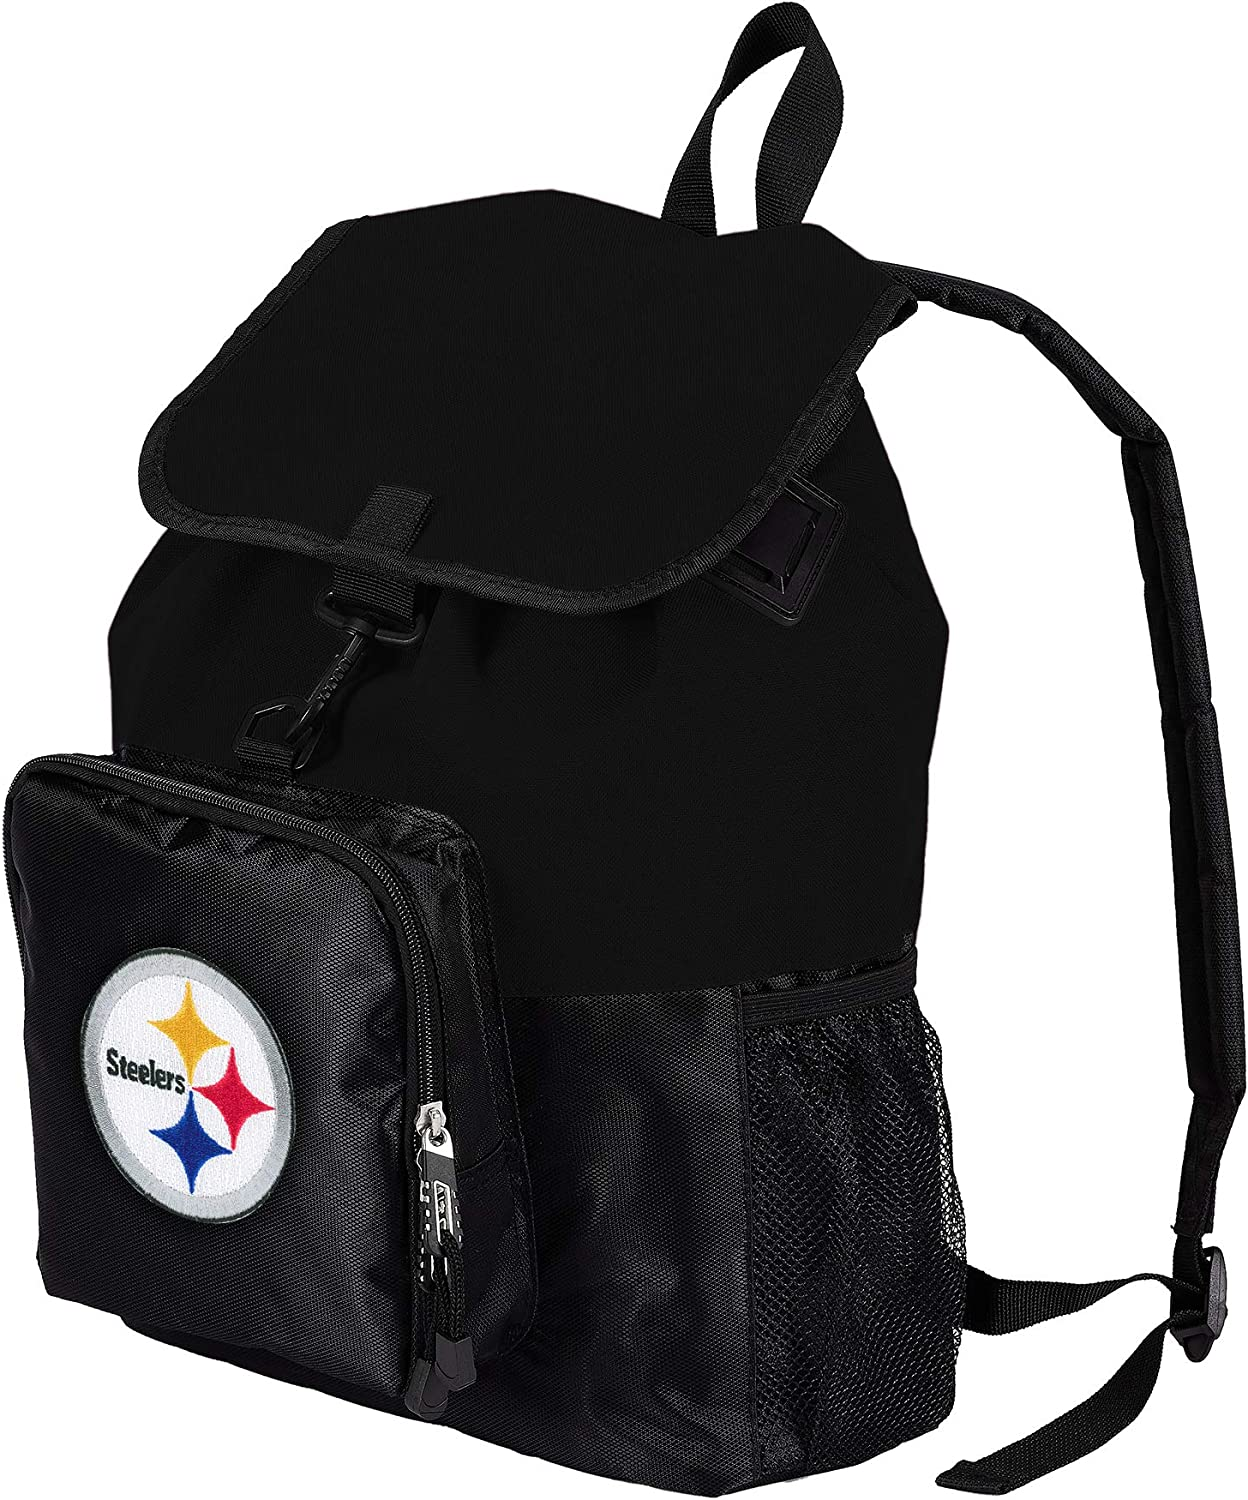 Officially Licensed NFL Capitol Backpack Multi Color 18